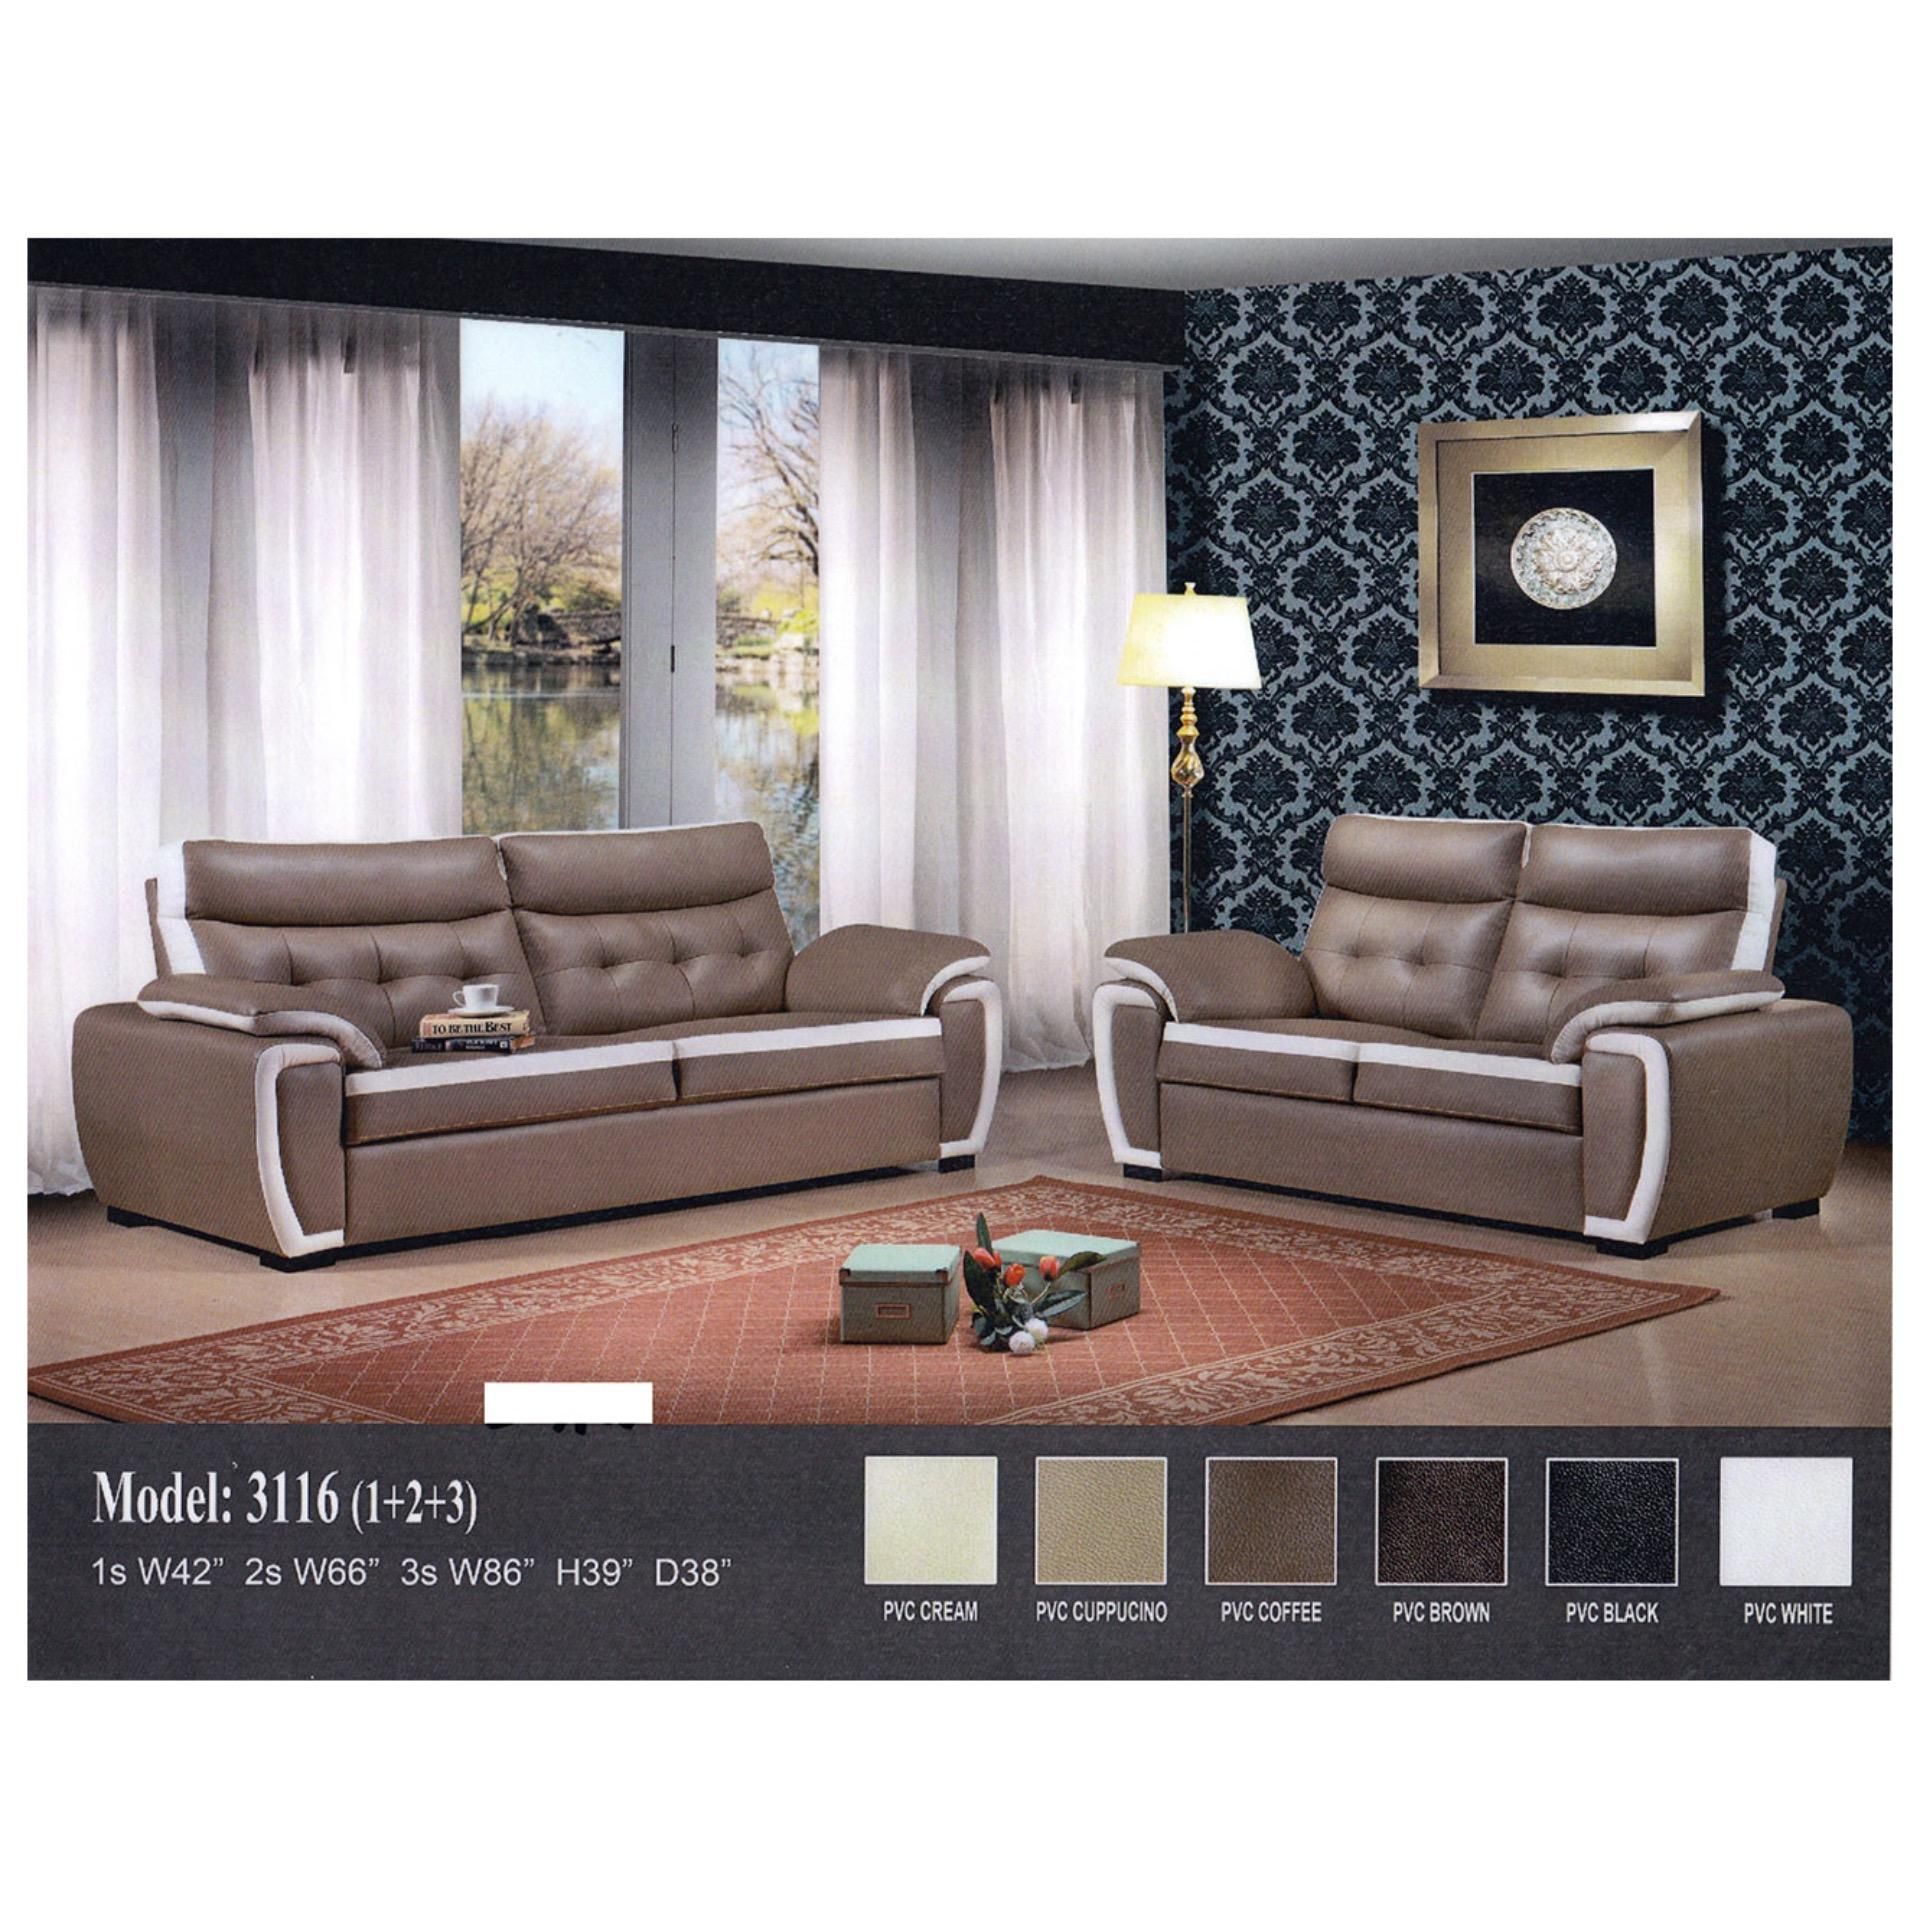 3 2 leather sofa set thomasville bed relax chair lo end 4 28 2021 12 00 am